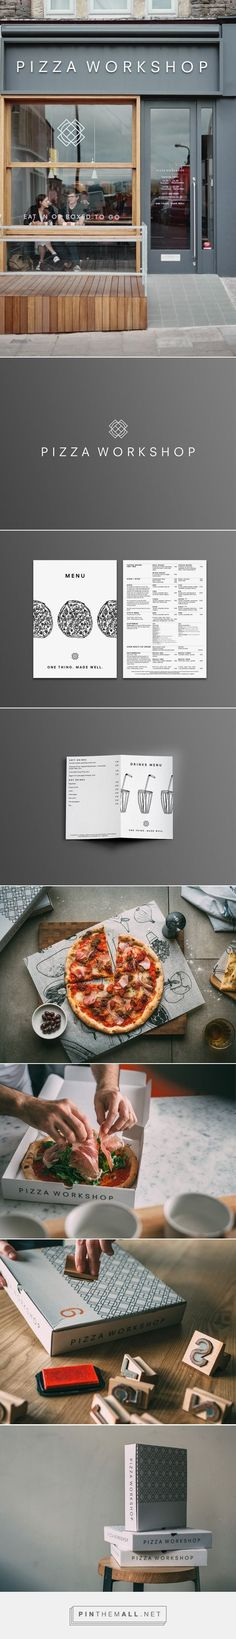 Pizza Workshop | Identity Designed - created via https://pinthemall.net